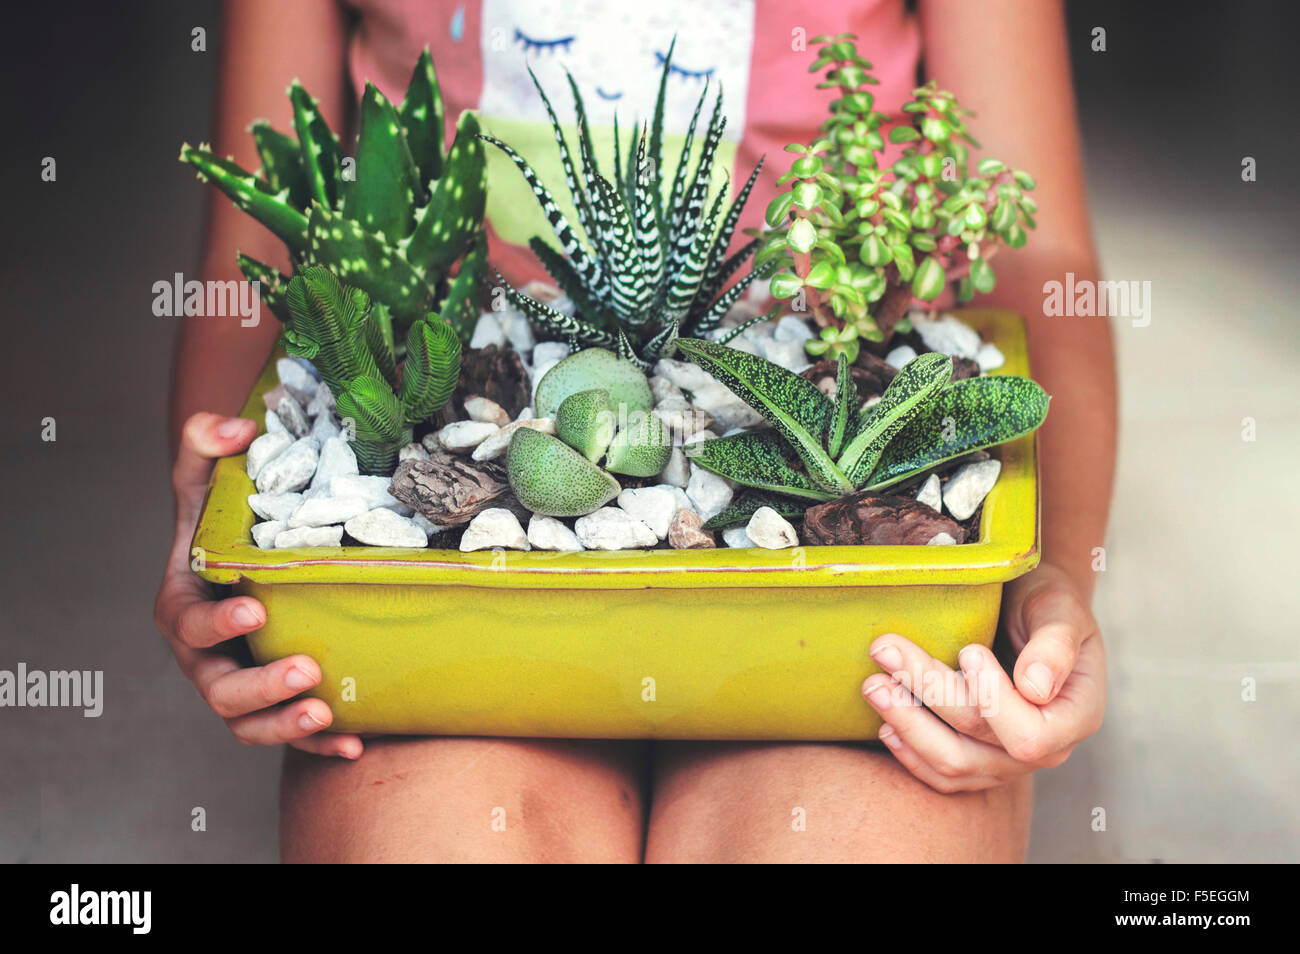 Fille assise, tenant un affichage des plantes succulentes Photo Stock